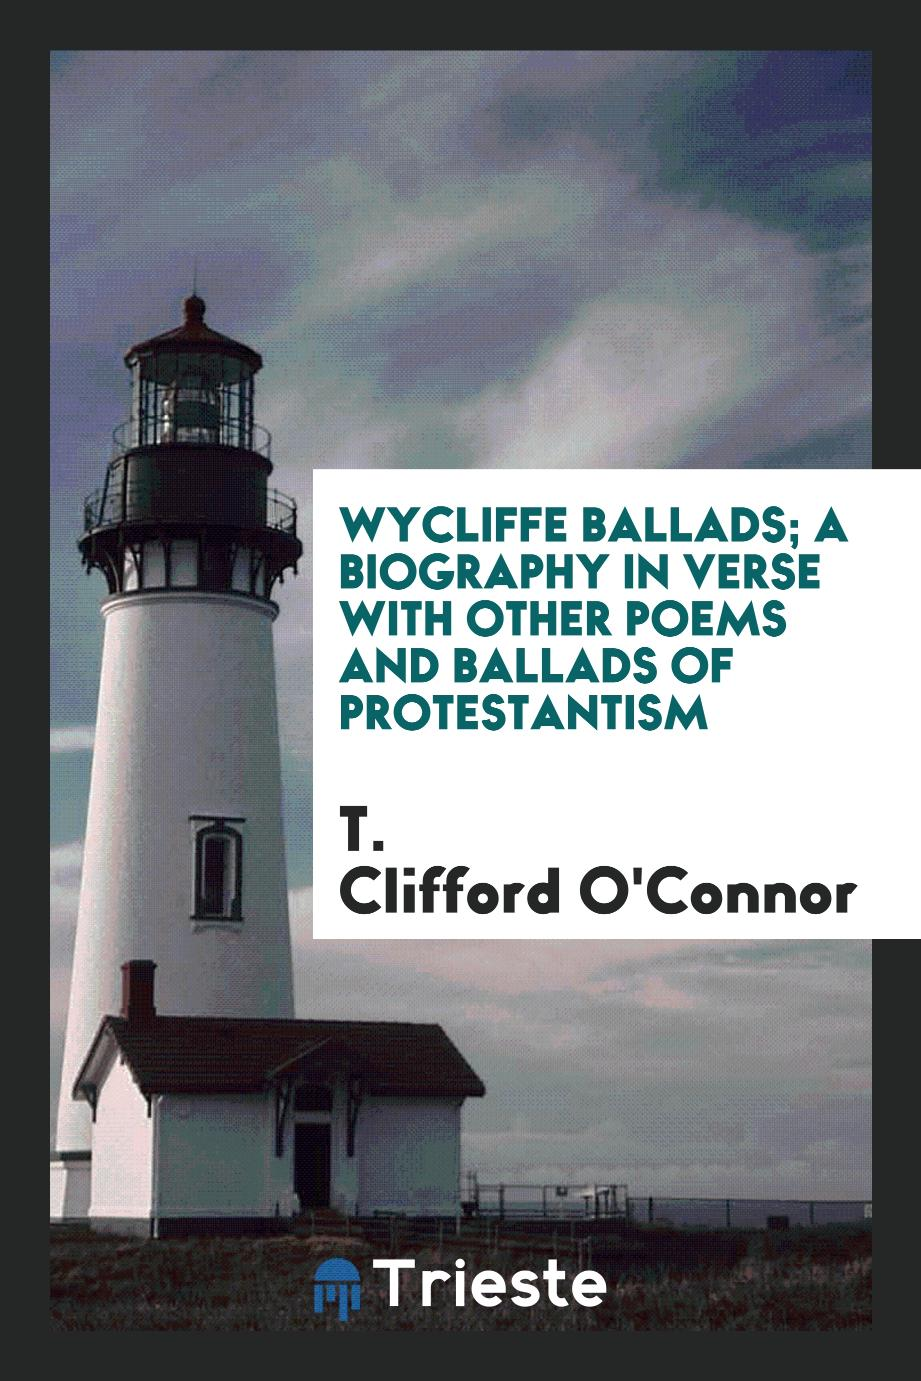 Wycliffe ballads; a biography in verse with other poems and ballads of protestantism